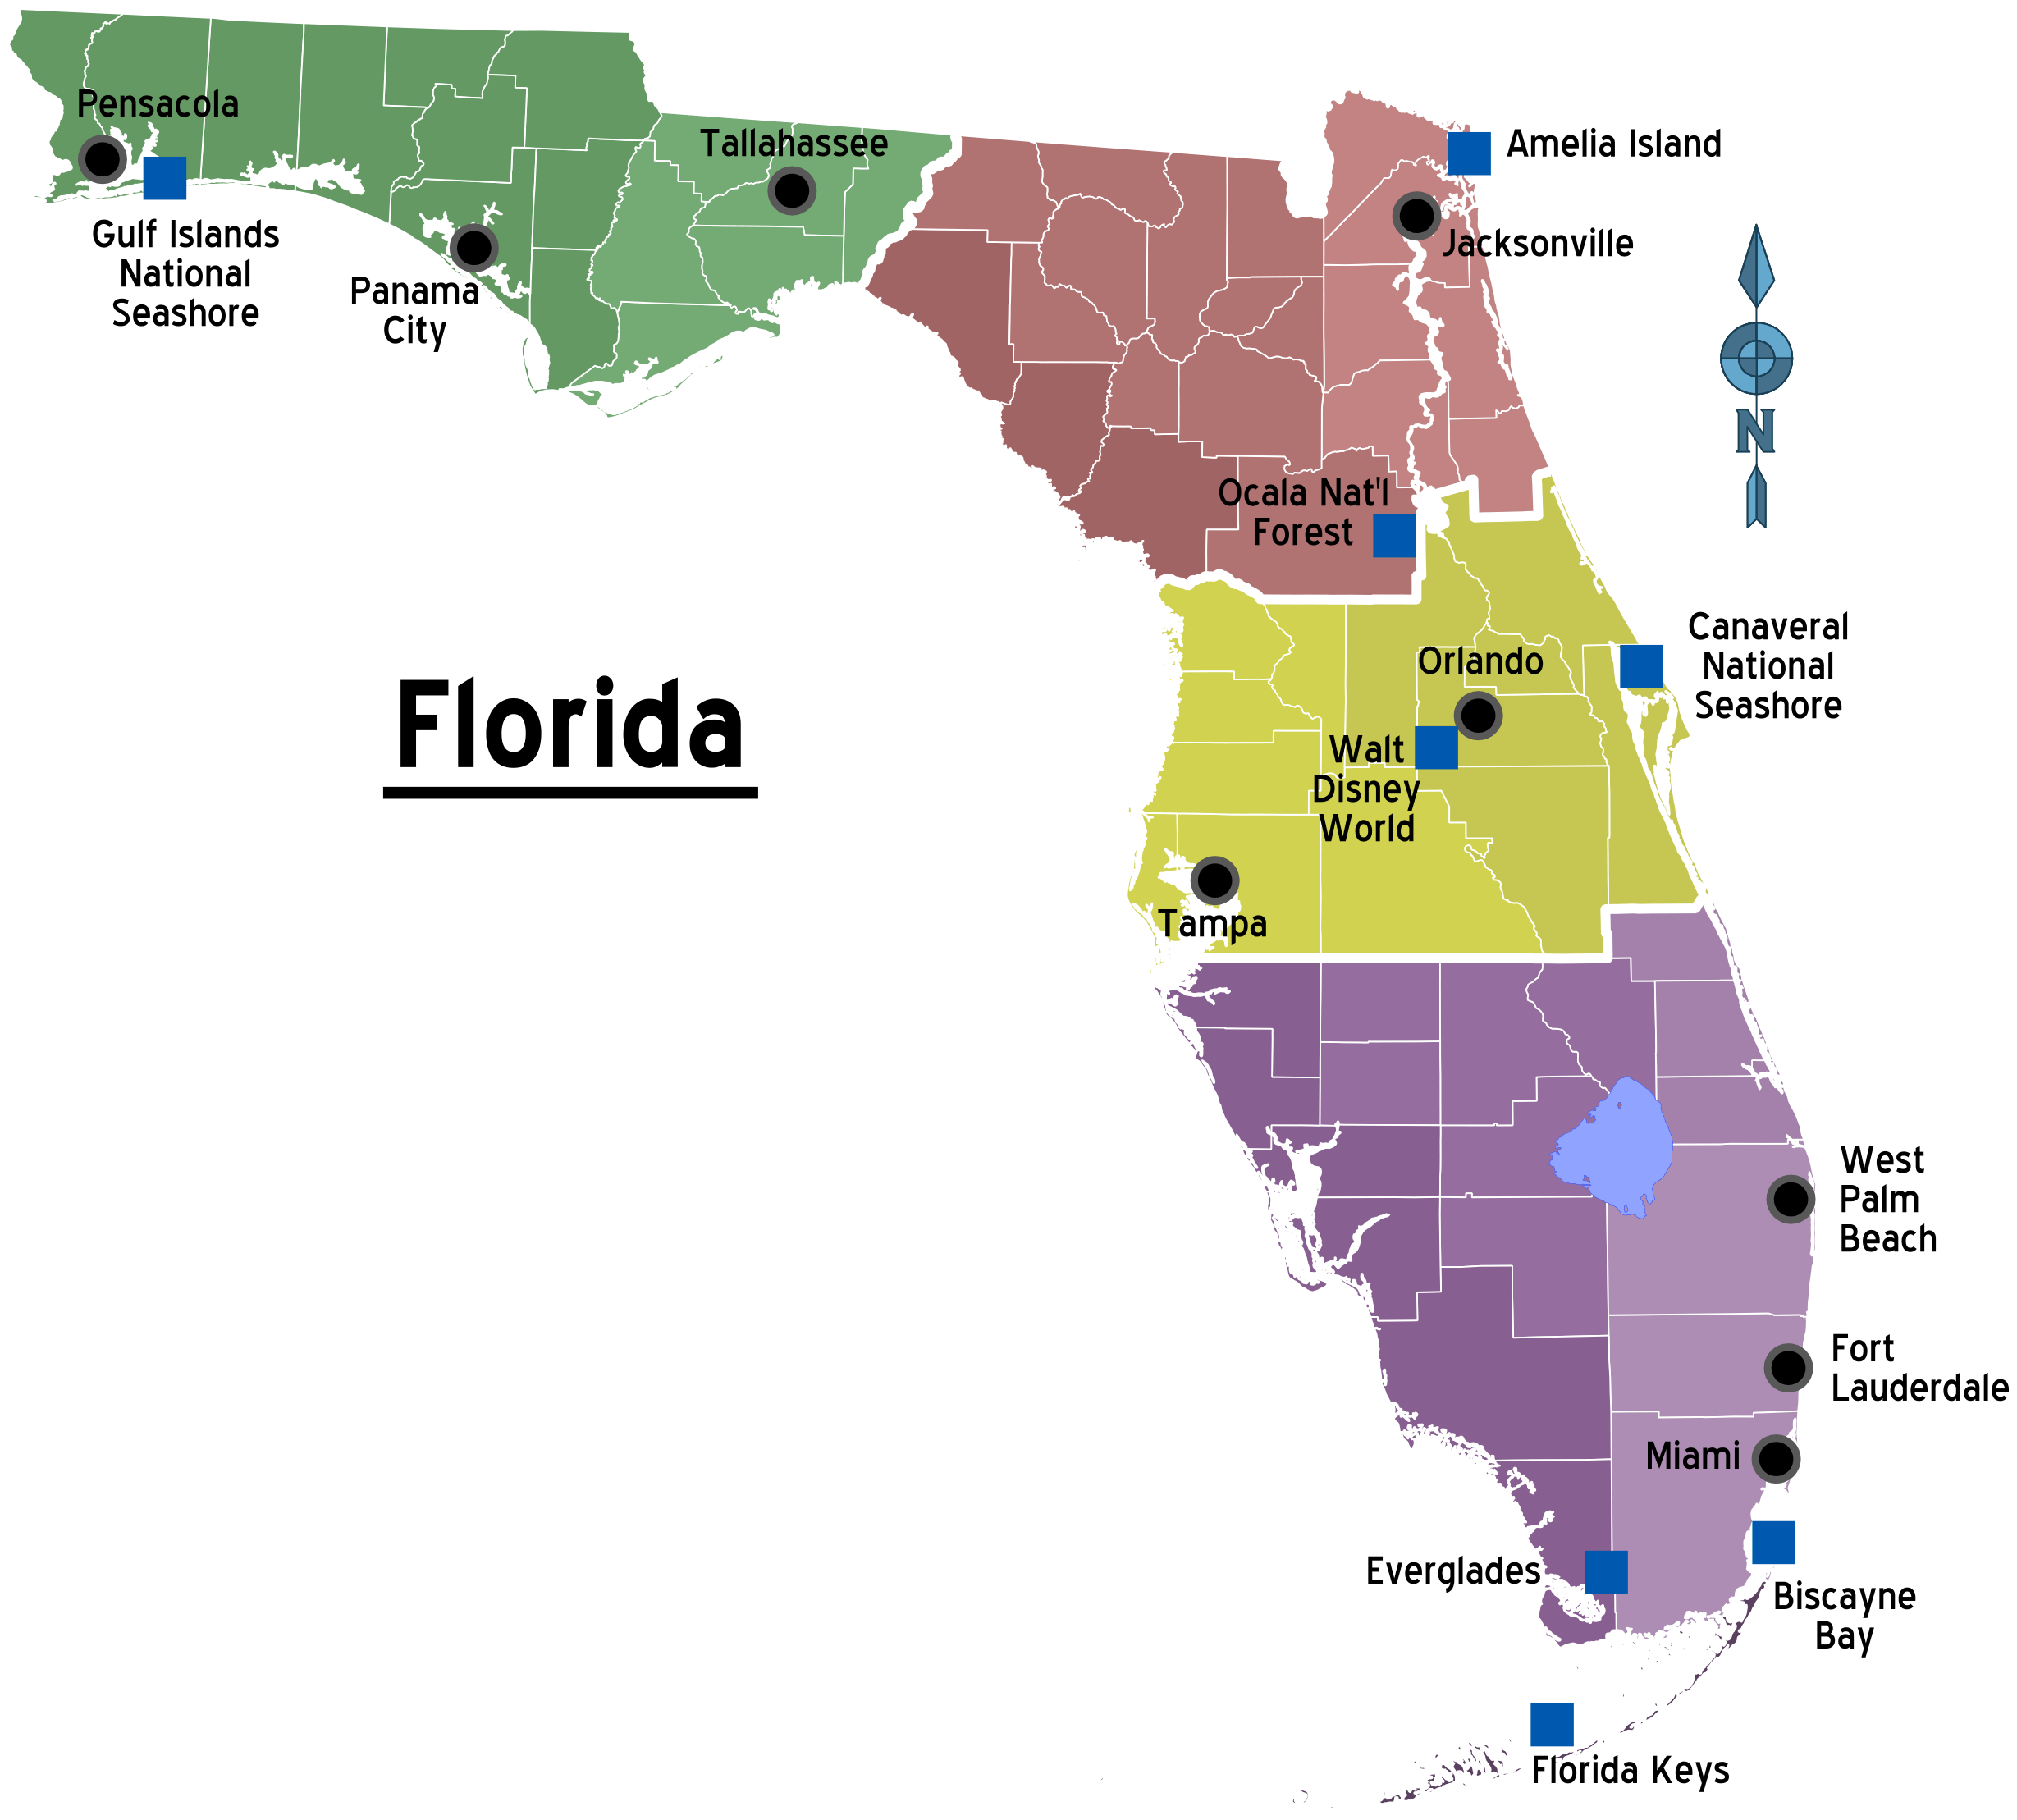 Florida Regions Map With Cities Mapsofnet - Florida map of cities